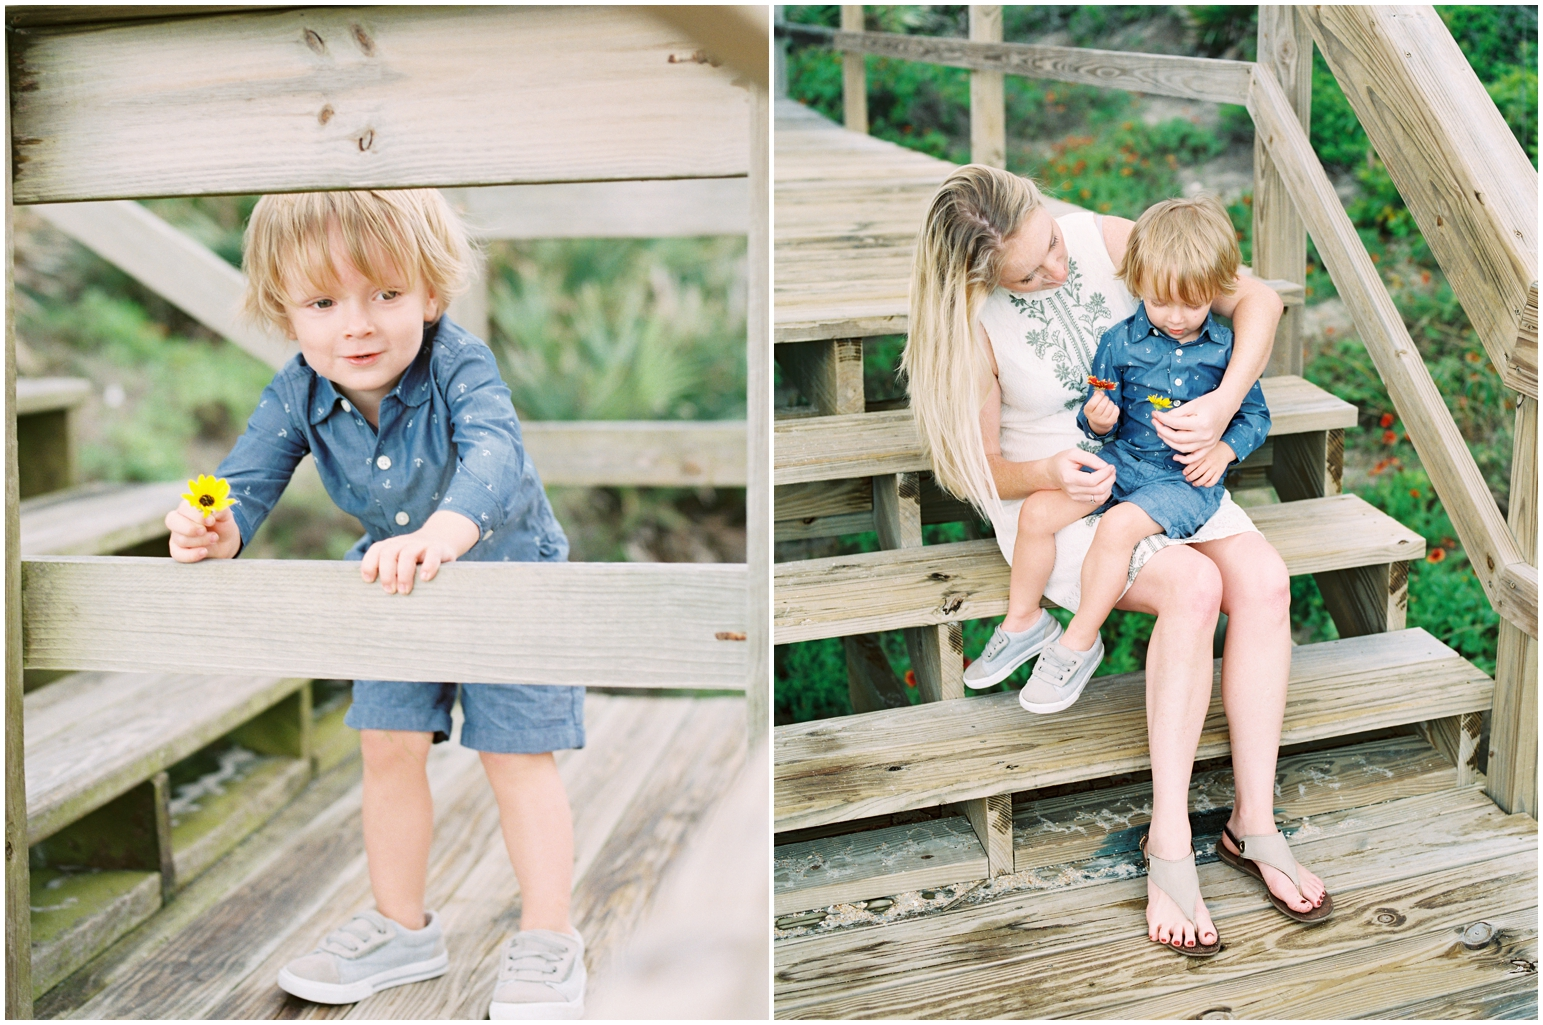 Lisa Silva Photography- Jacksonville, St. Augustine, Amelia Island, Ponte Vedra Beach, North East Florida Fine Art Film Photographer- Mommy and Me Lifestyle Session in Ponte Vedra Beach_0011.jpg